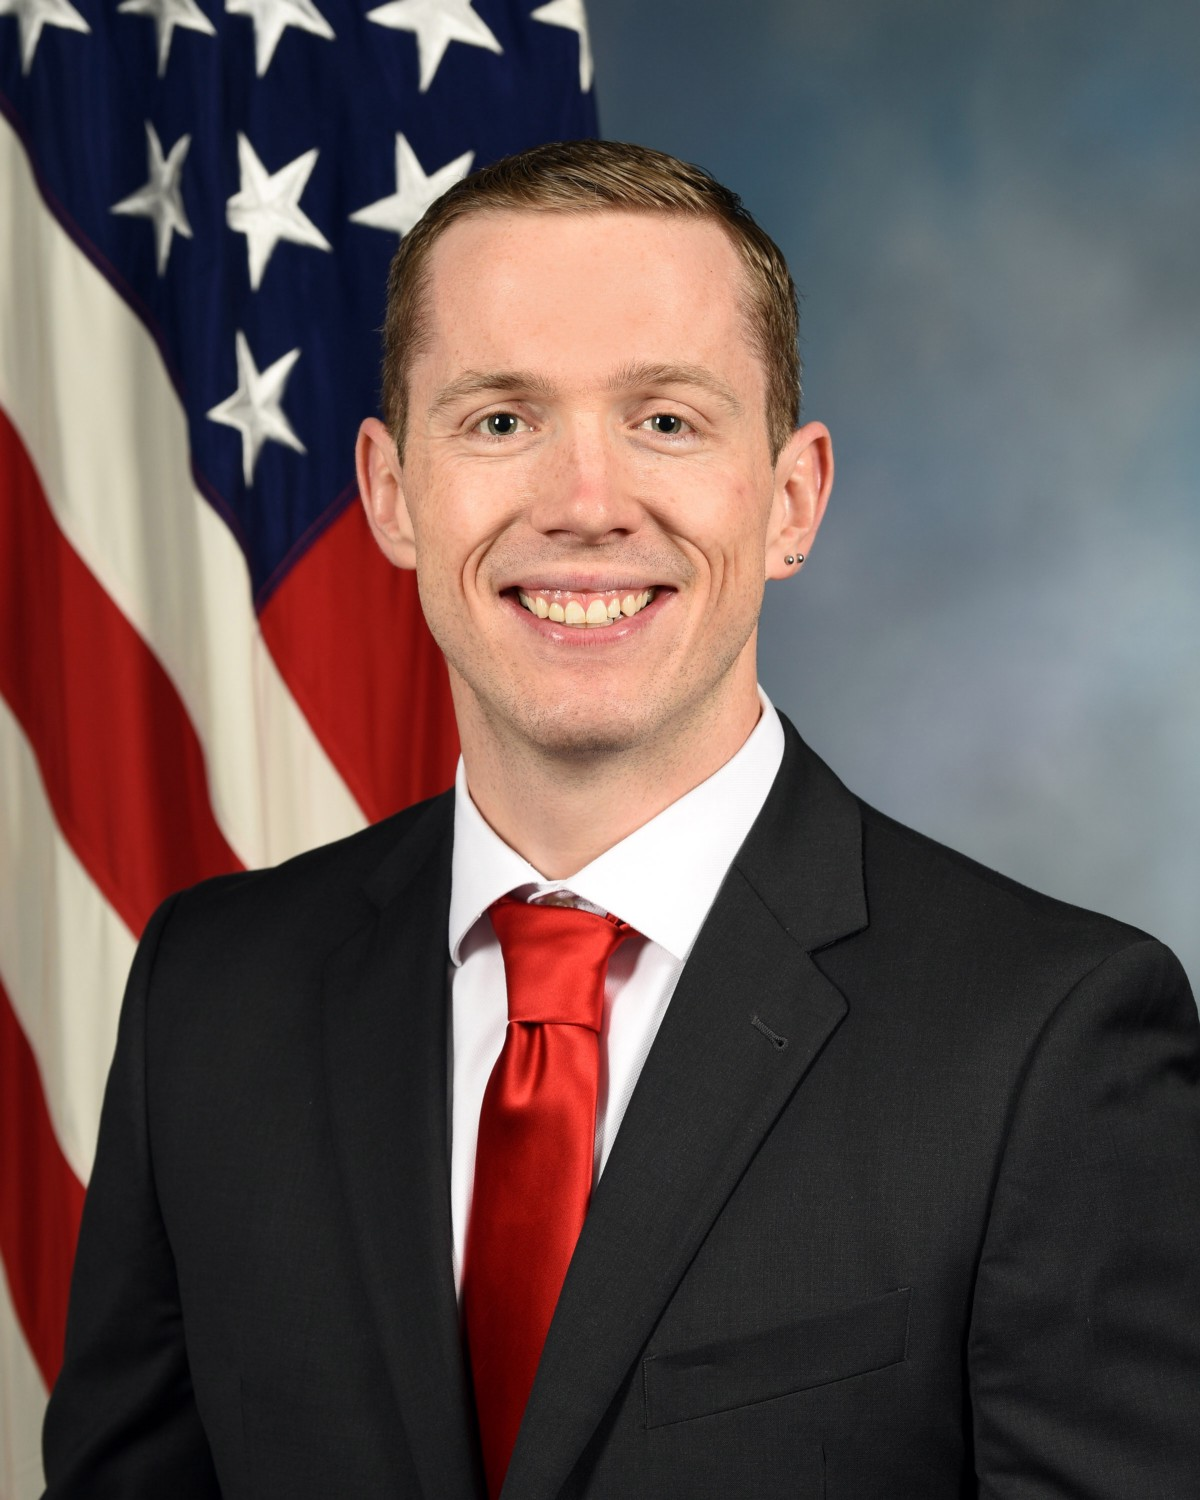 Aanika Biosciences welcomes Dr. Alexander Titus, former Assistant Director of Biotechnology at the Department of Defense (DoD), to its Advisory Board